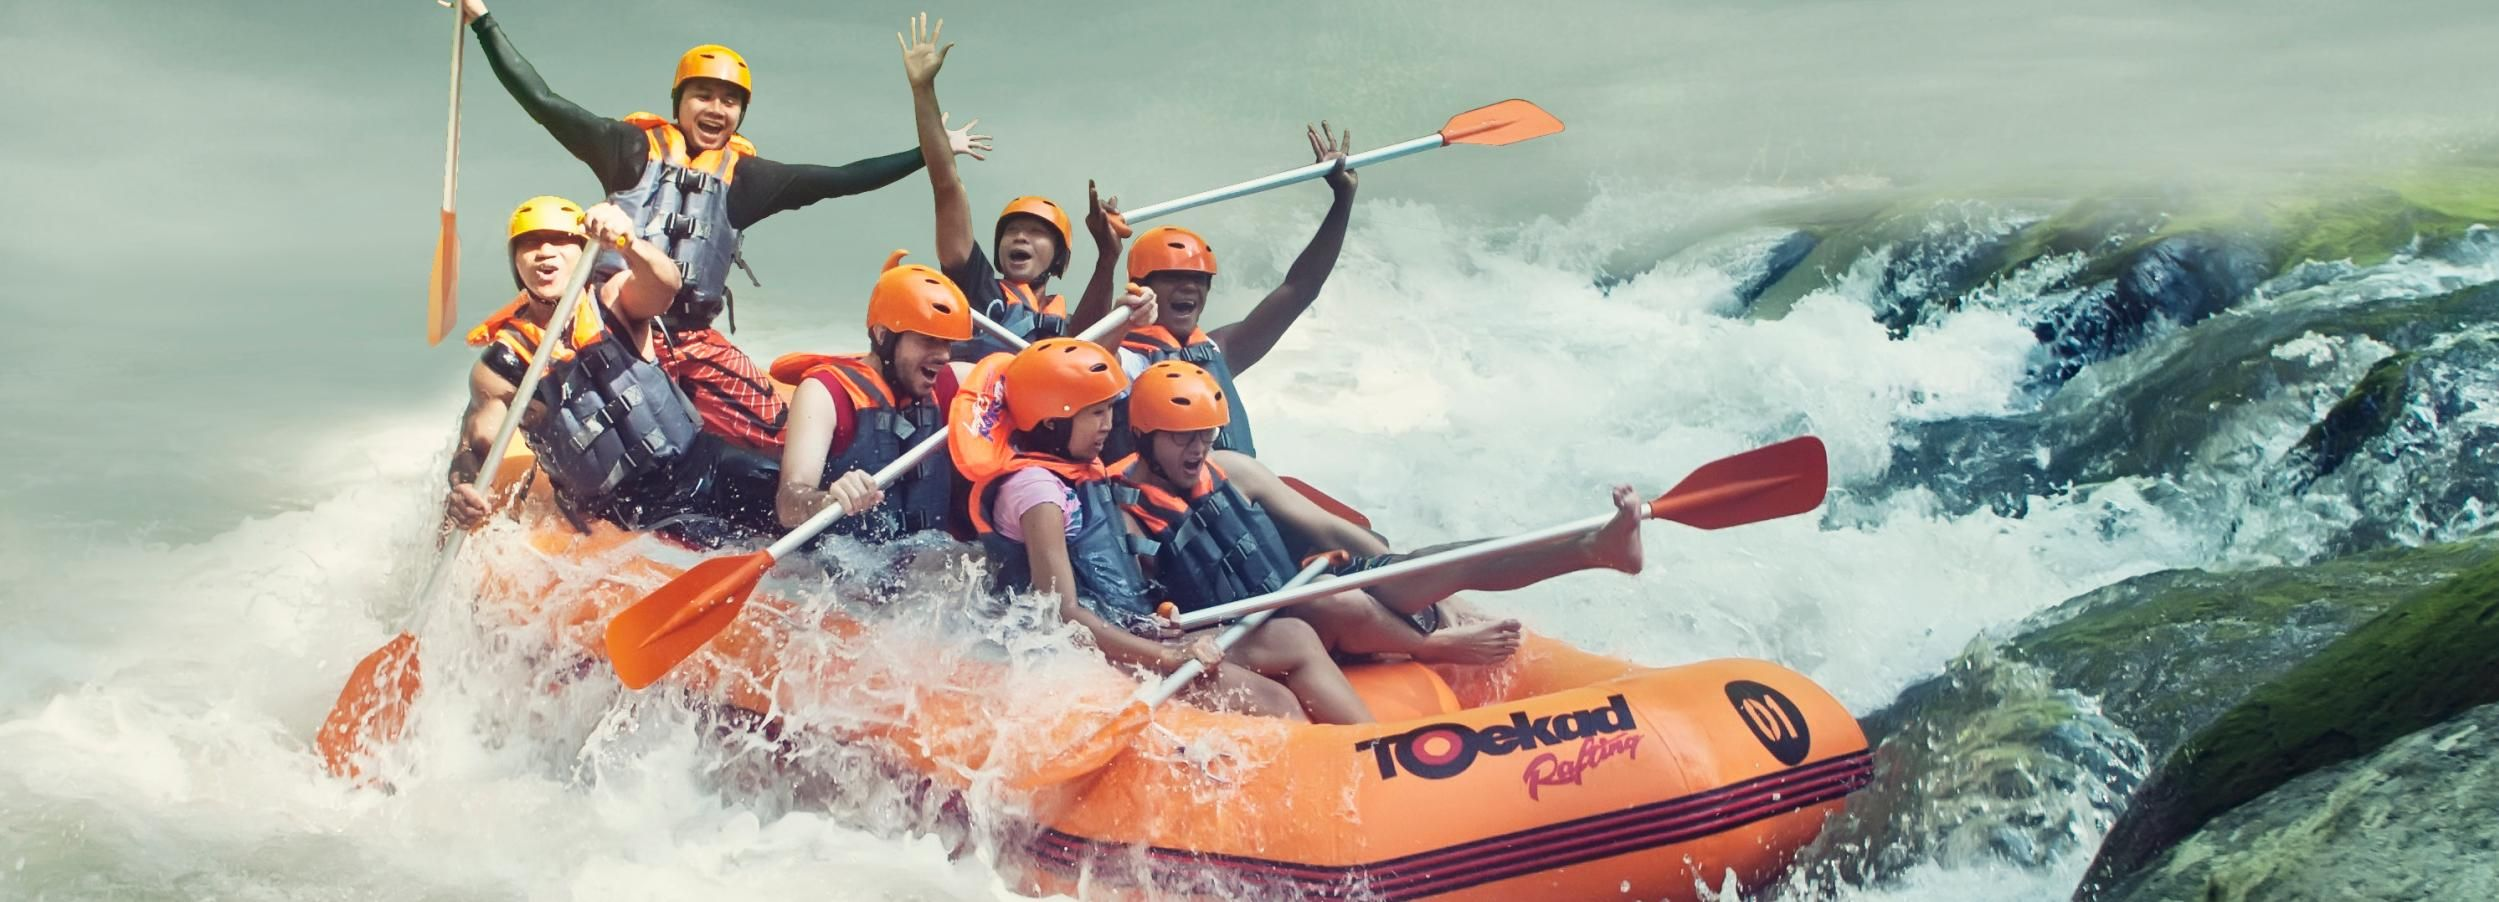 Ayung River: All Inclusive Rafting Adventure